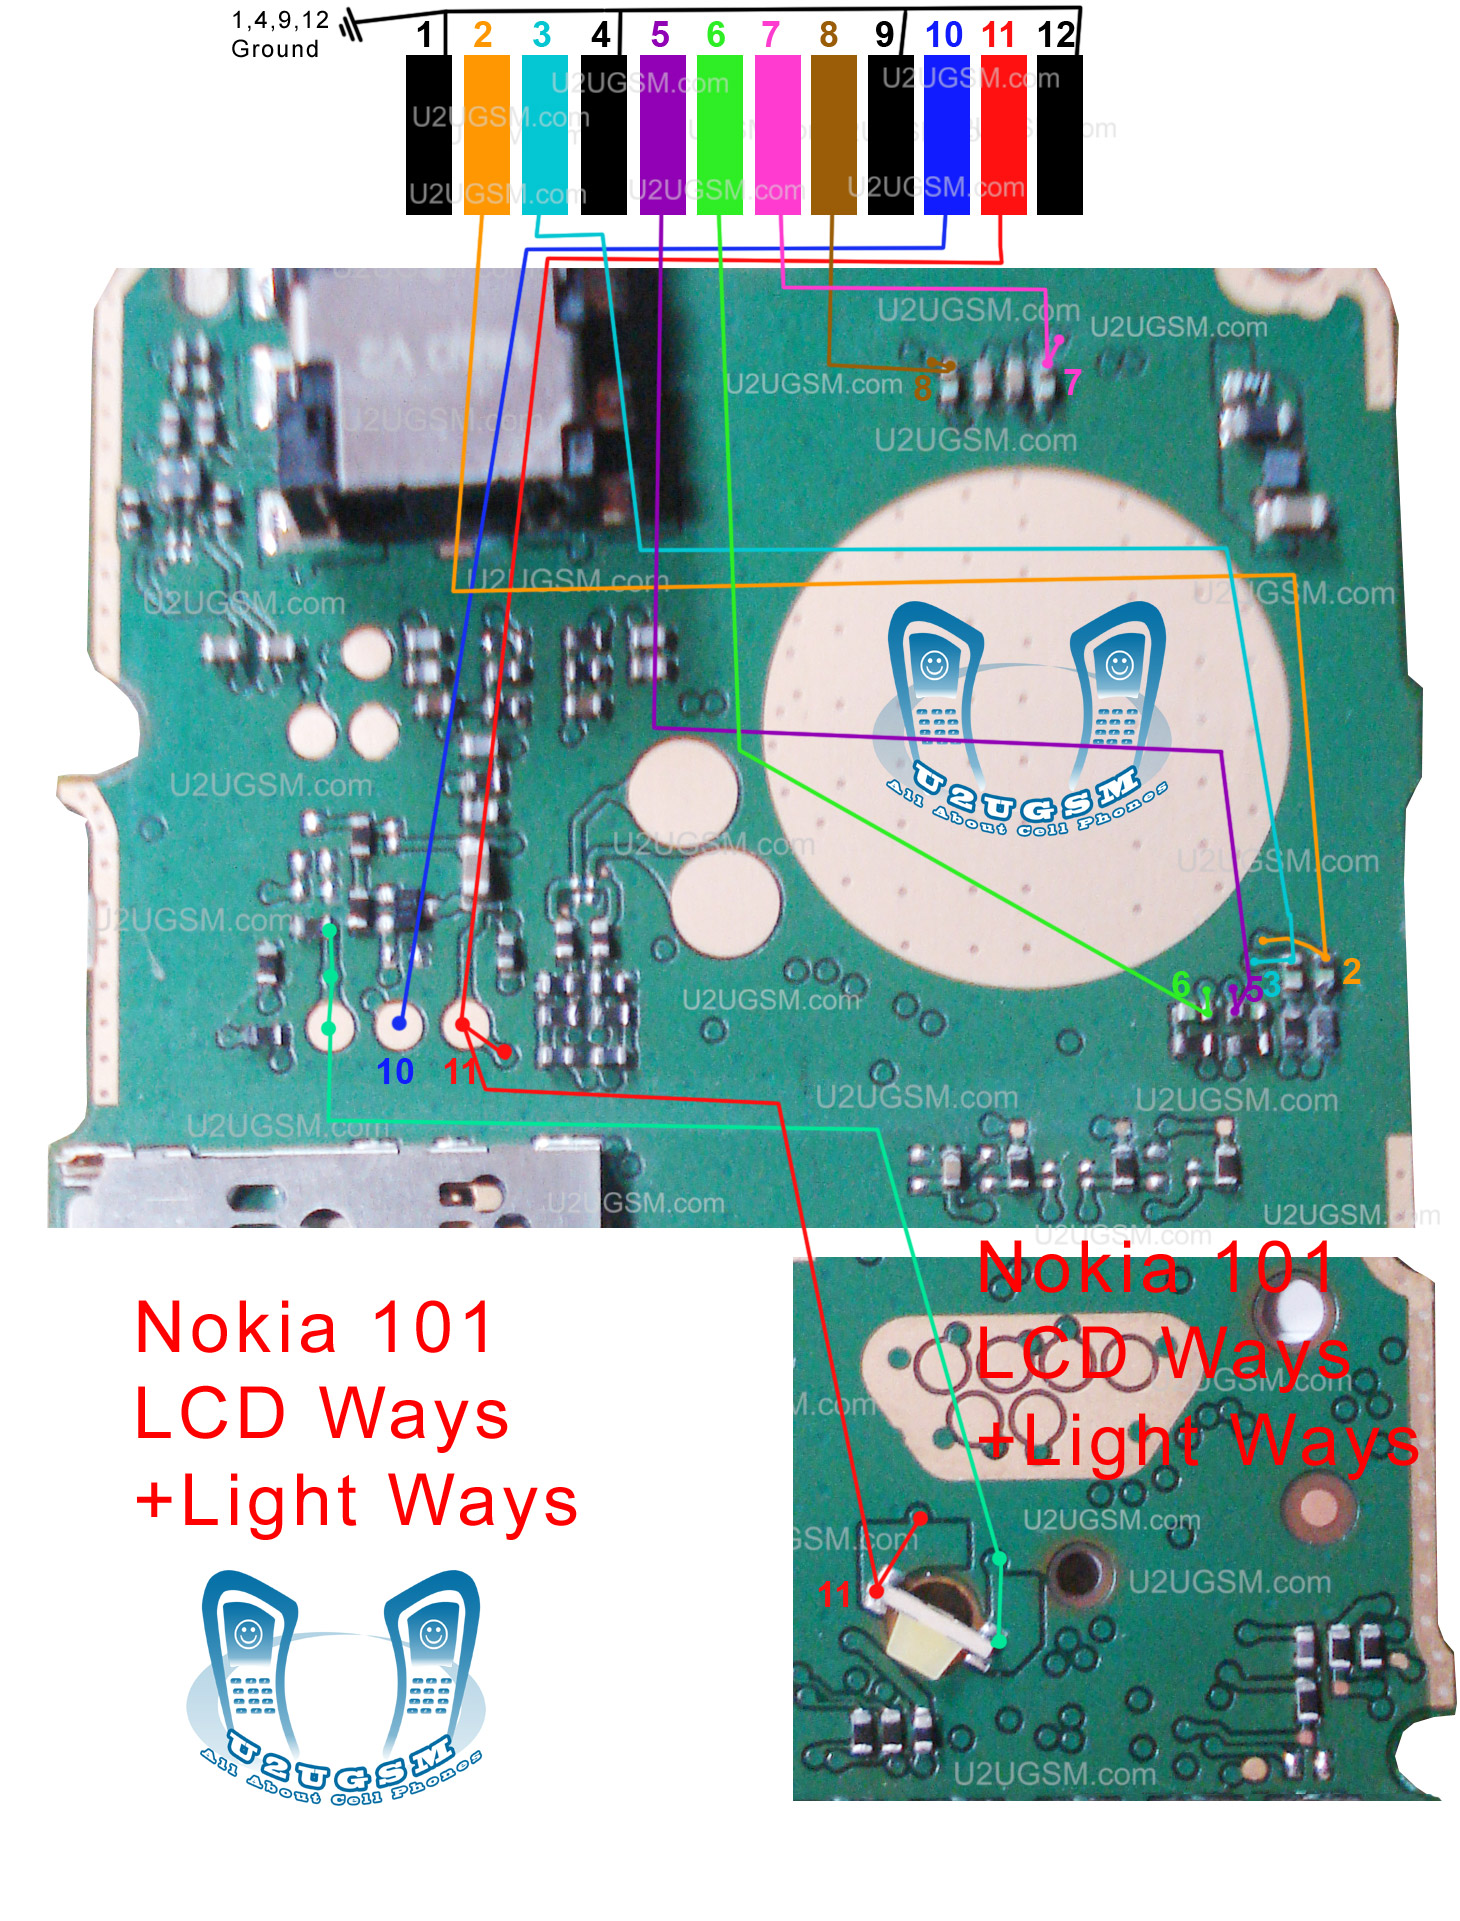 Jumper solution nokia 108 dual sim full lcd line jumper solution nokia - Nokia 100 Lcd Ways Jumpers Solution 100 Tested